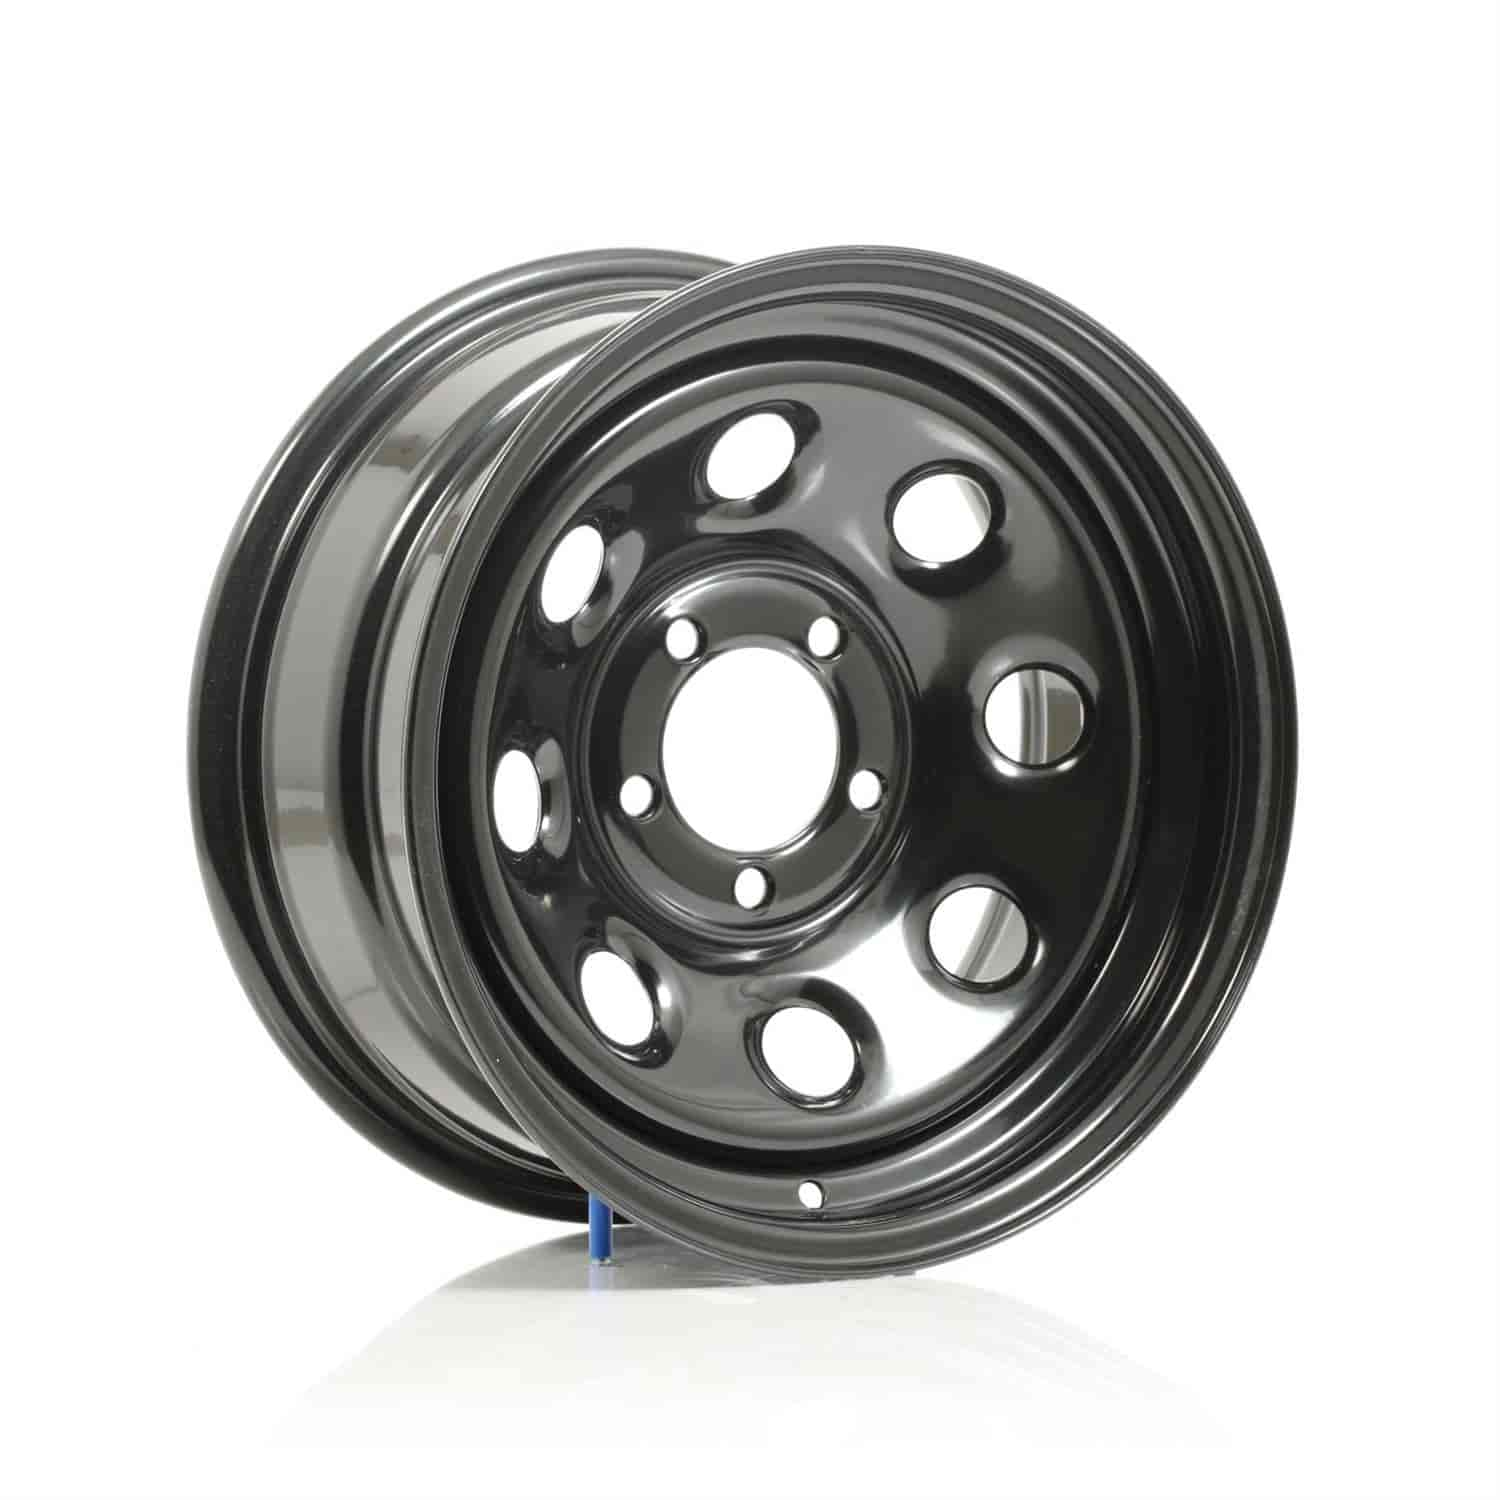 Cragar 3975460 - Cragar Black Soft 8 Wheels